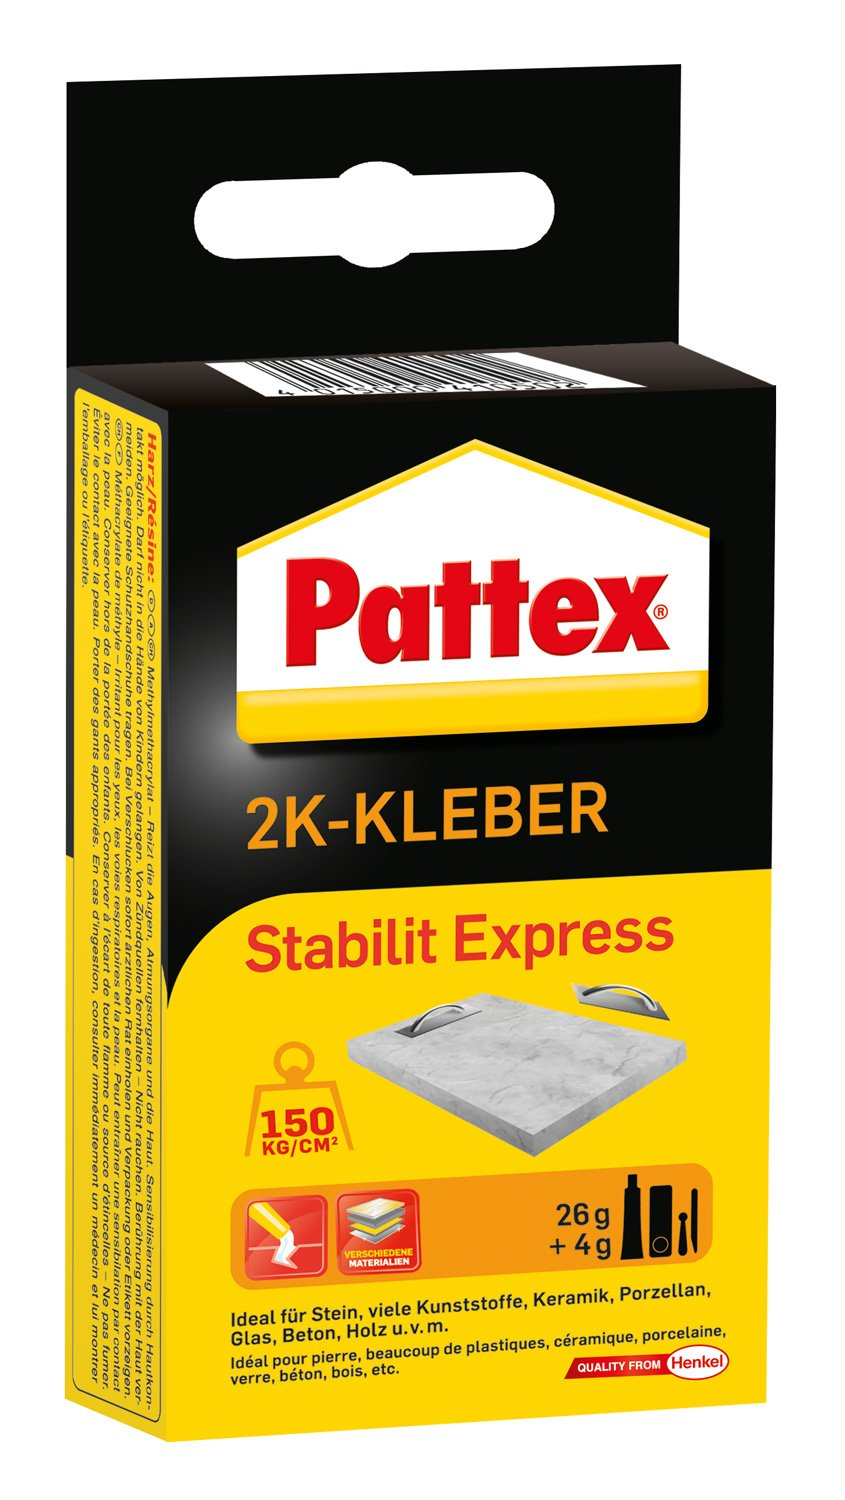 Pattex 1160252'Stability Express' Two Component Adhesive, Black/Orange, 30 g PSE13 B001PHBXKS